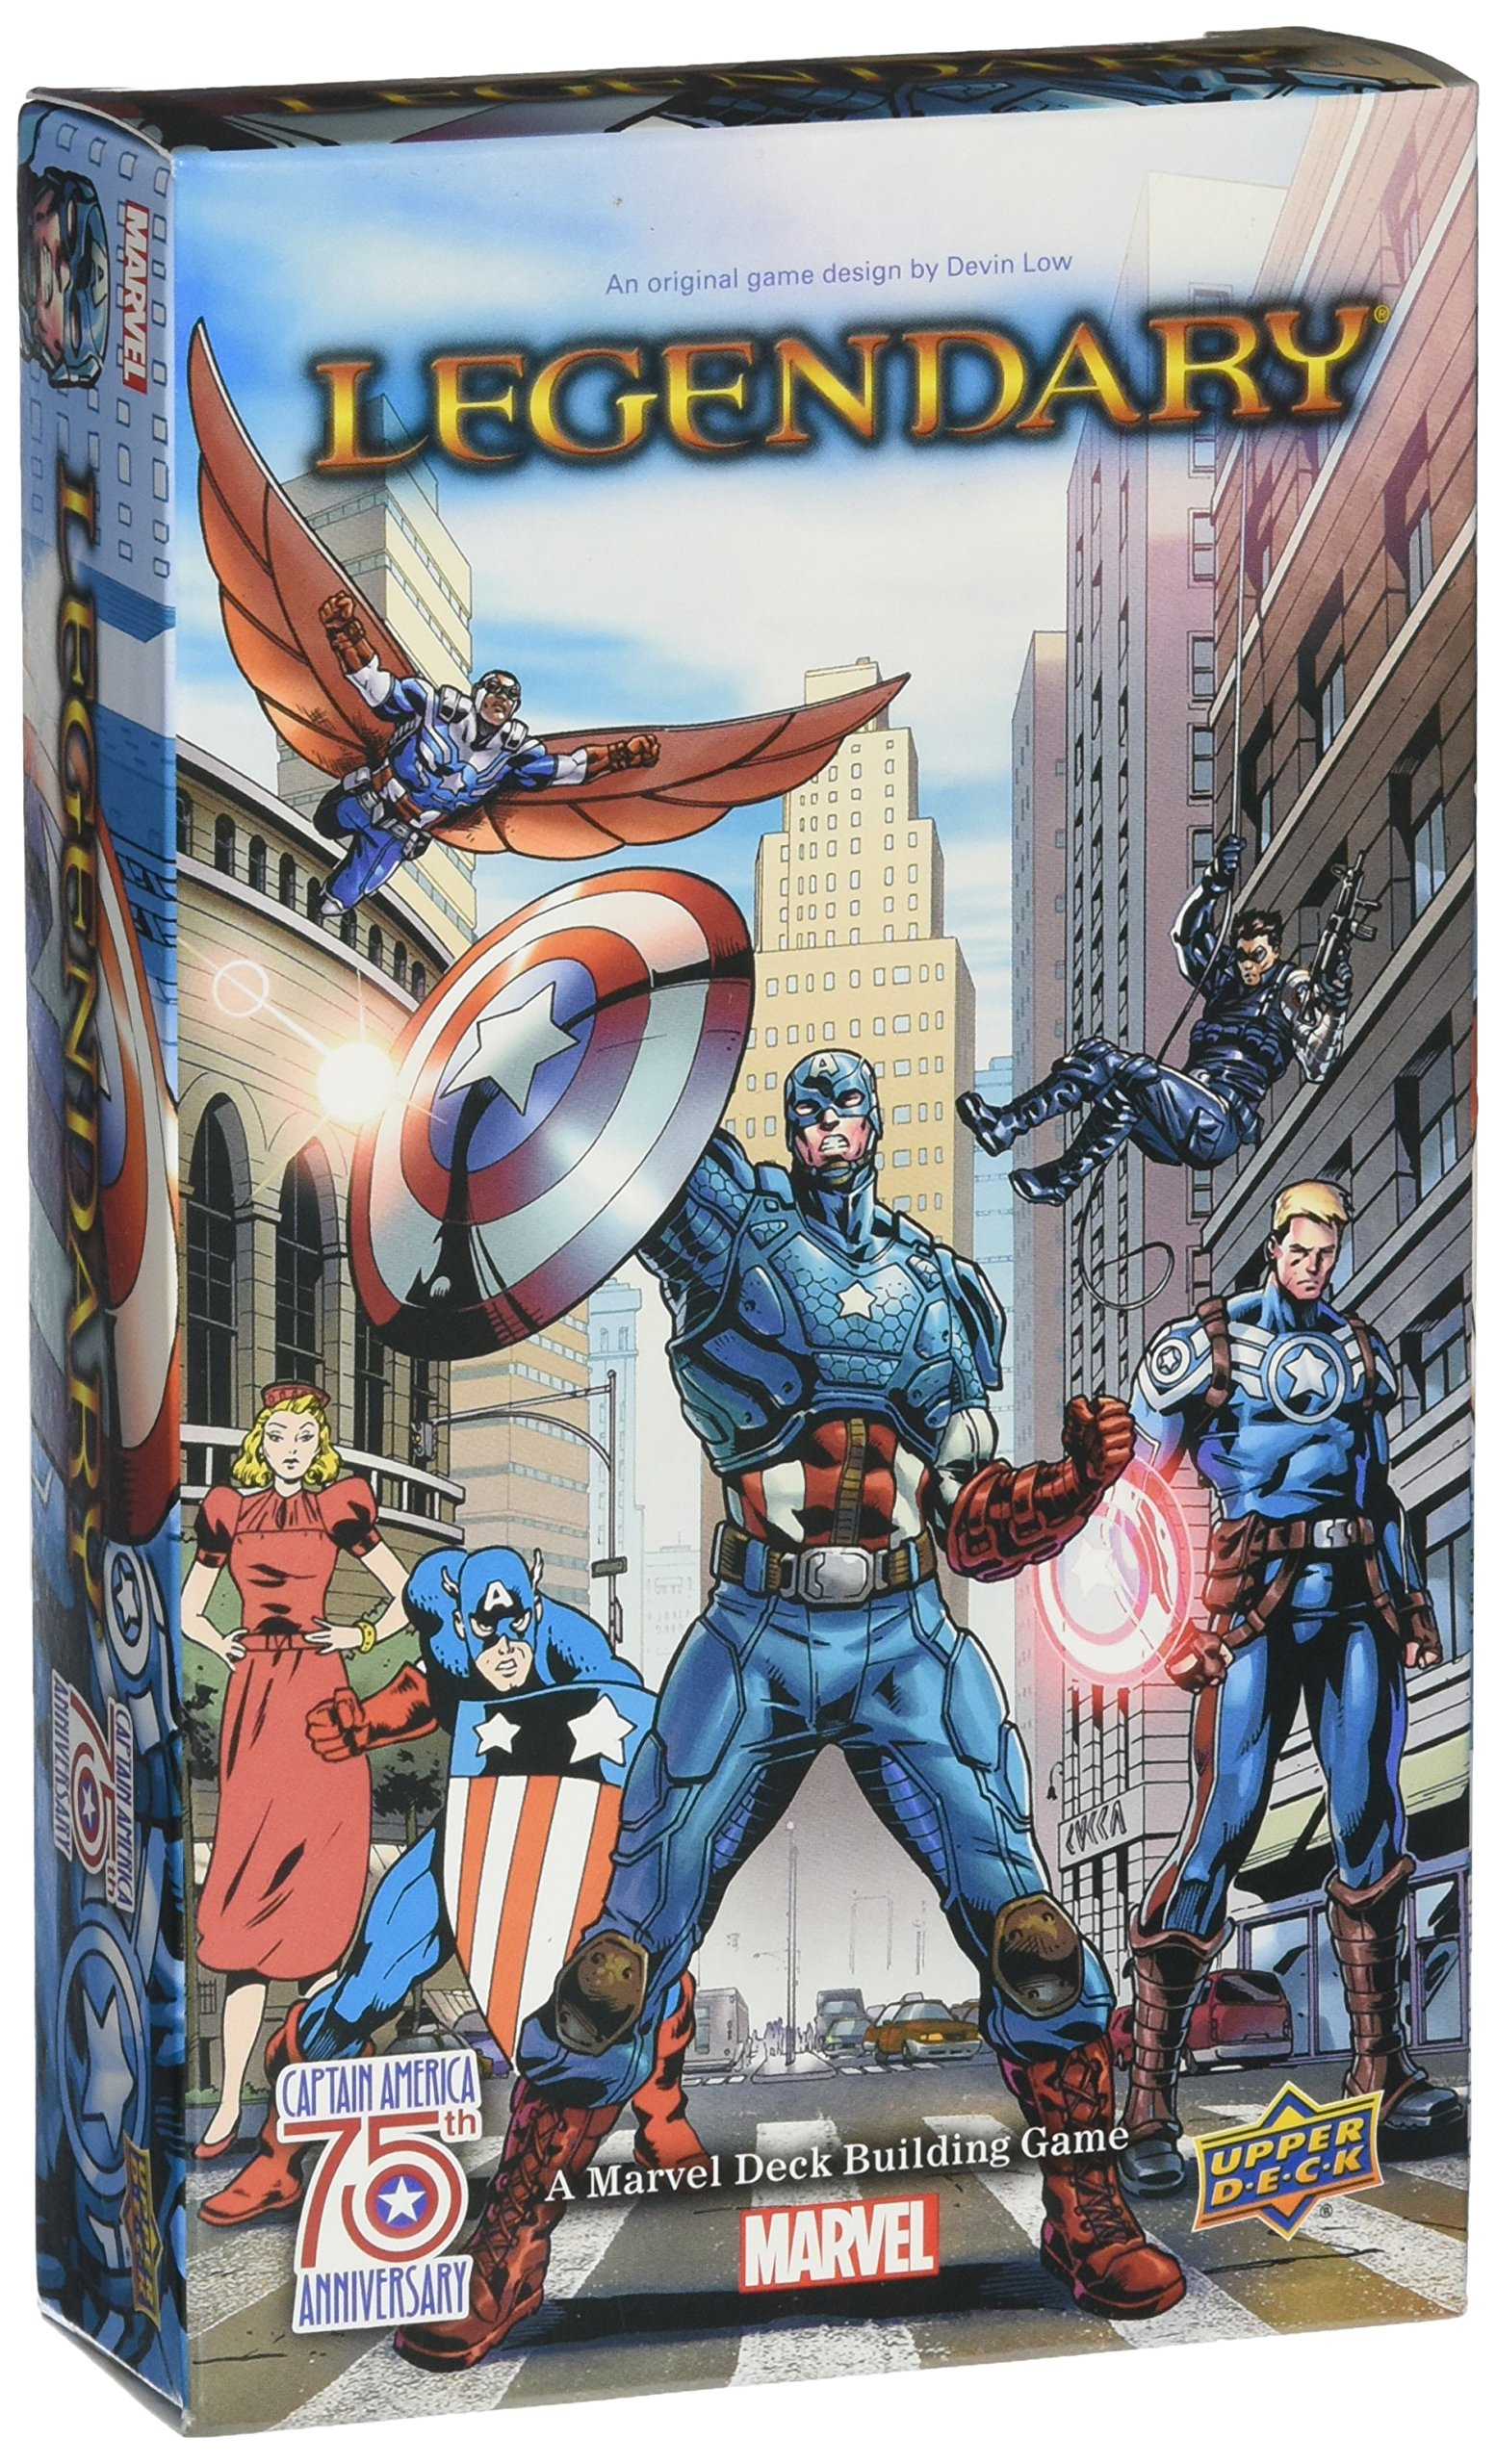 Marvel Legendary: A Deck Building Game: Captain America 75th Anniversary